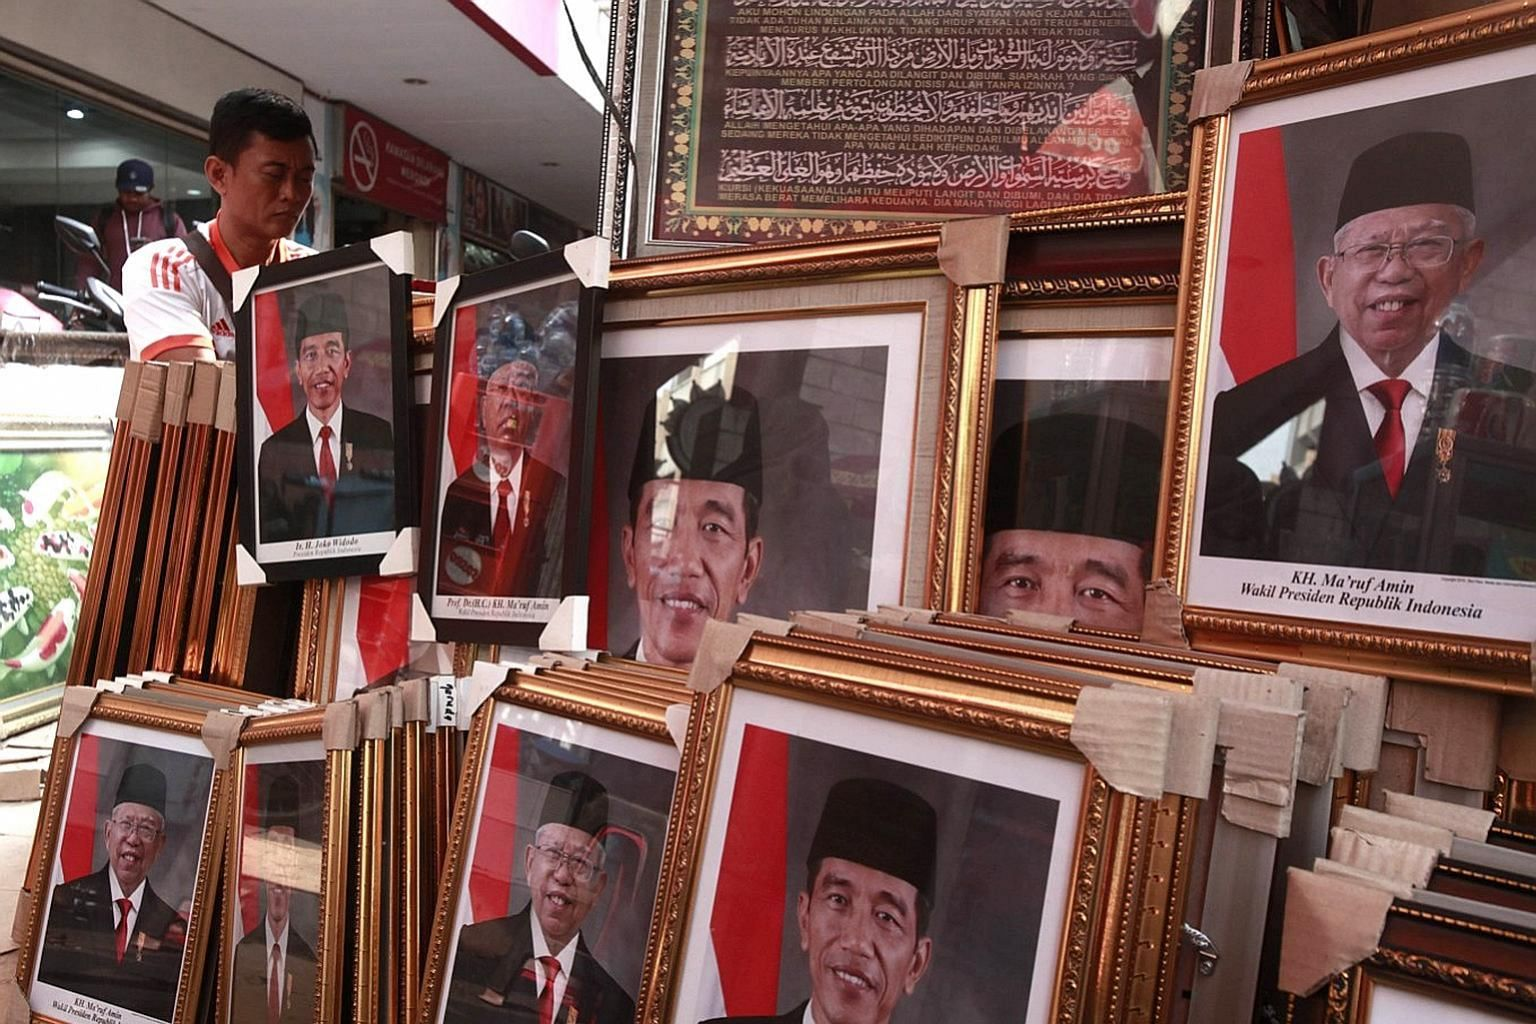 The State Secretariat released on Thursday the official portraits of Mr Joko Widodo and Mr Ma'ruf Amin, who will lead Indonesia as the country's president and vice-president, respectively, for the next five years.